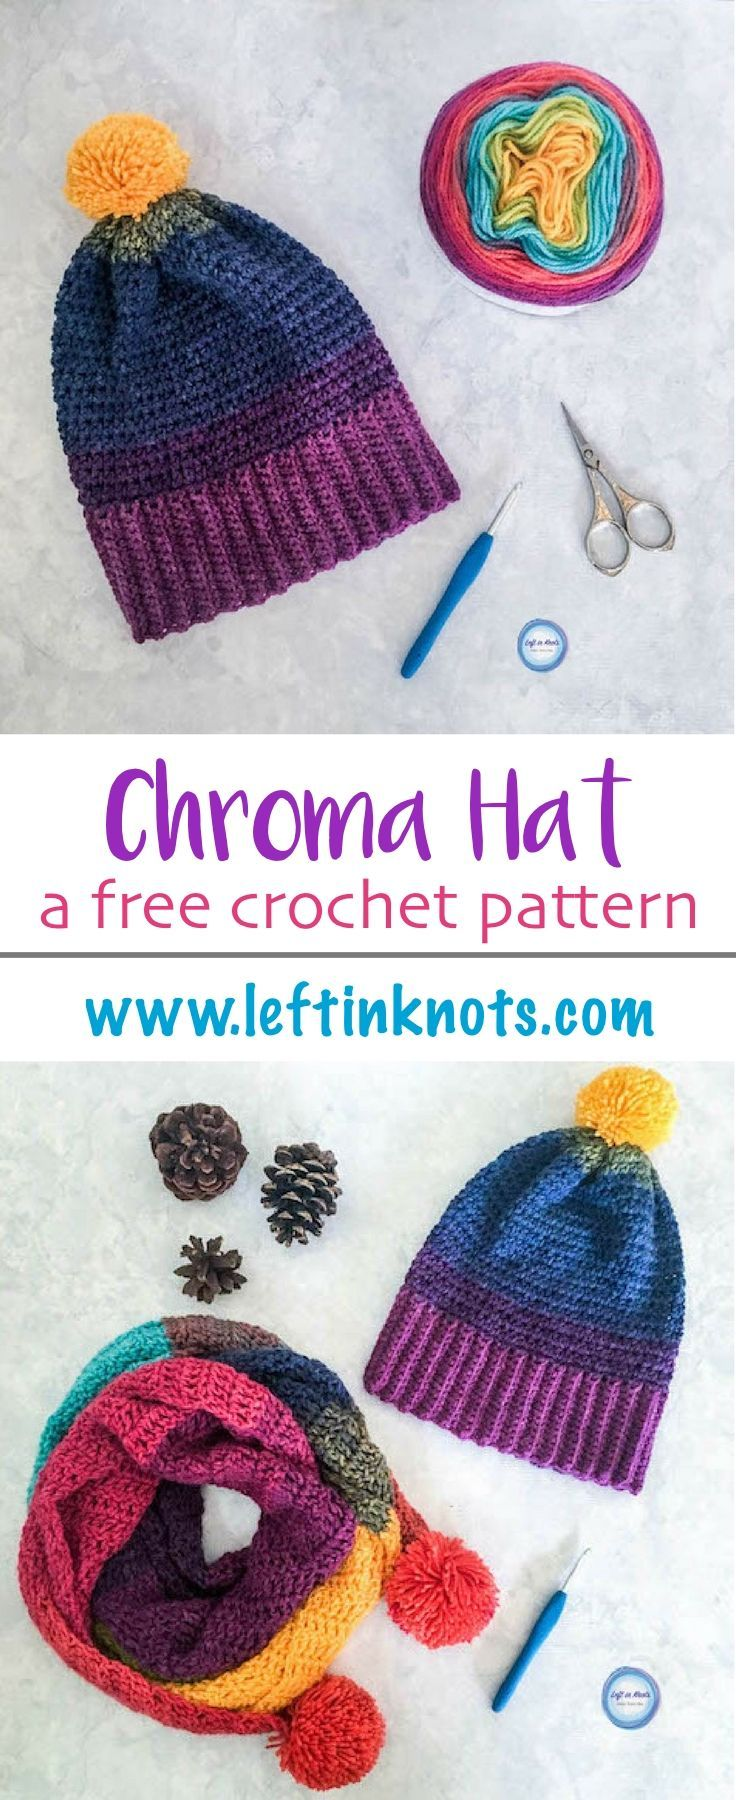 Chroma Hat - Free Crochet Pattern | Crochet Hats | Pinterest ...